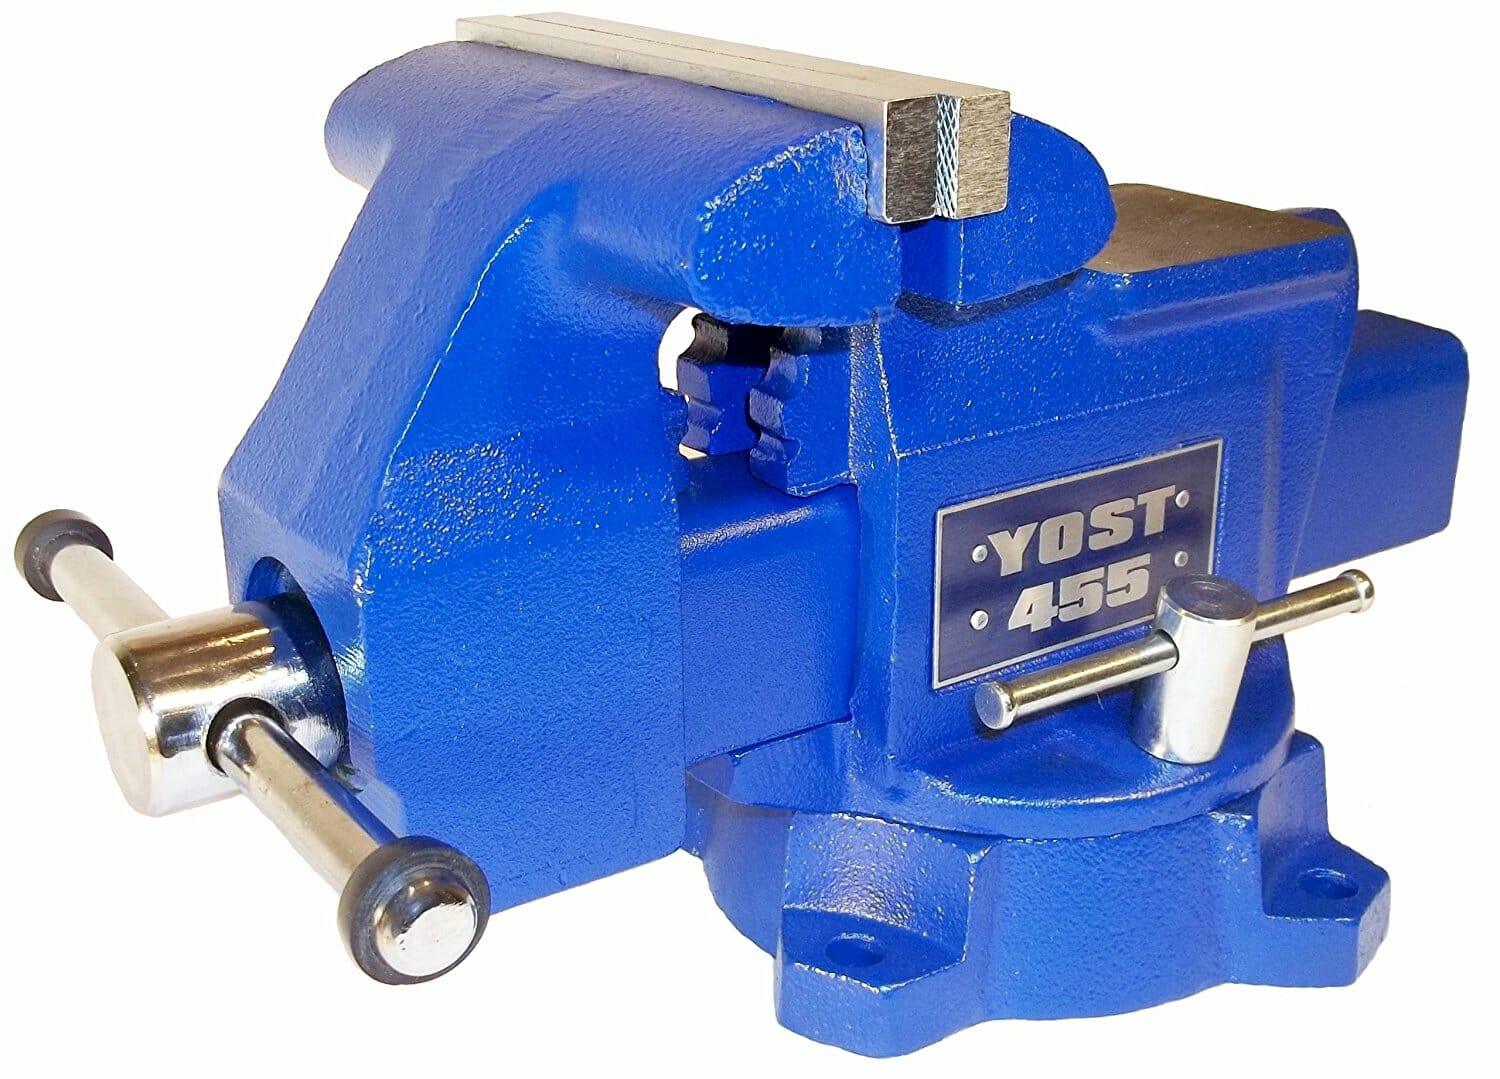 4 Simple Uses of a Bench Vise